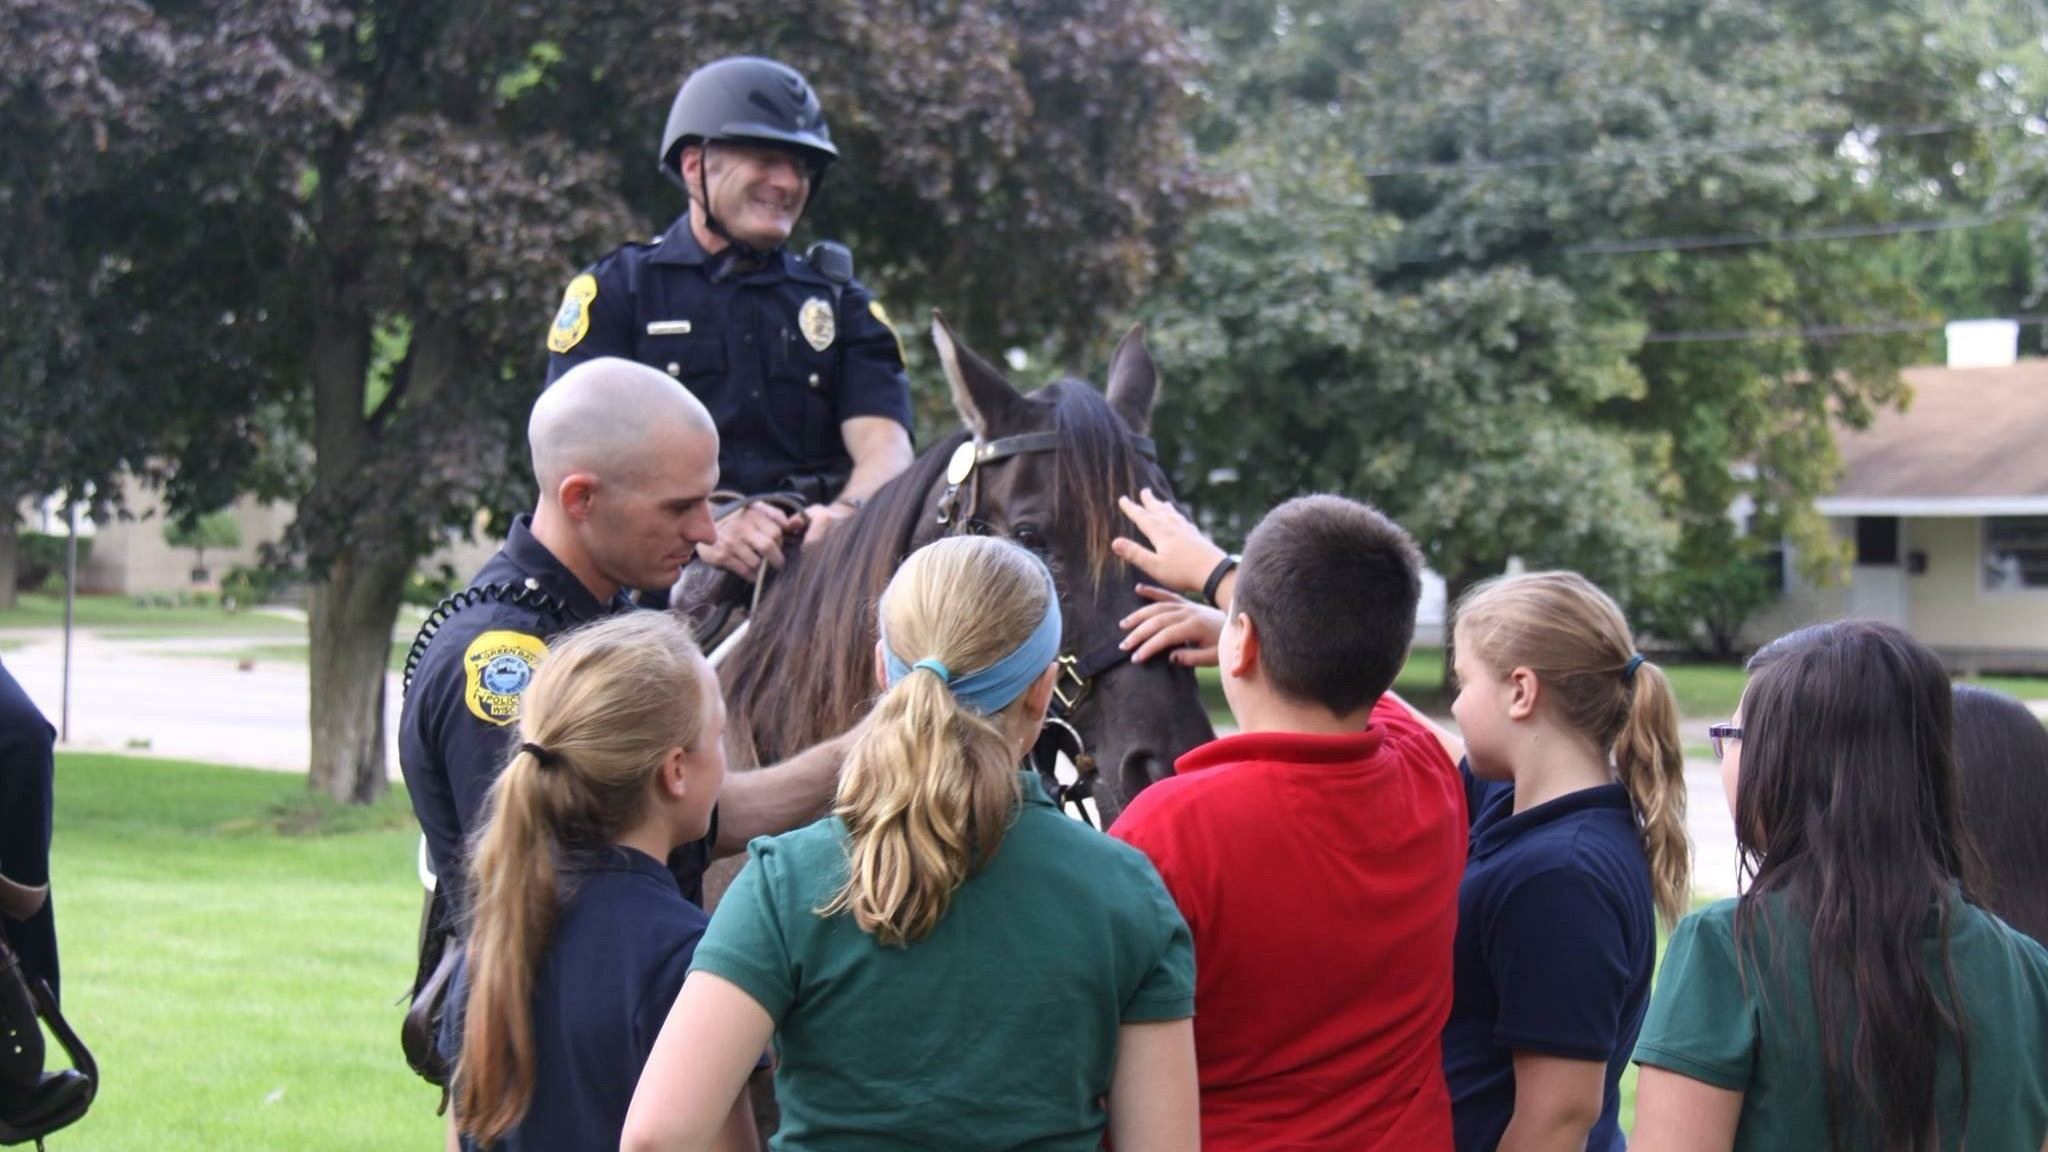 Police with Horse